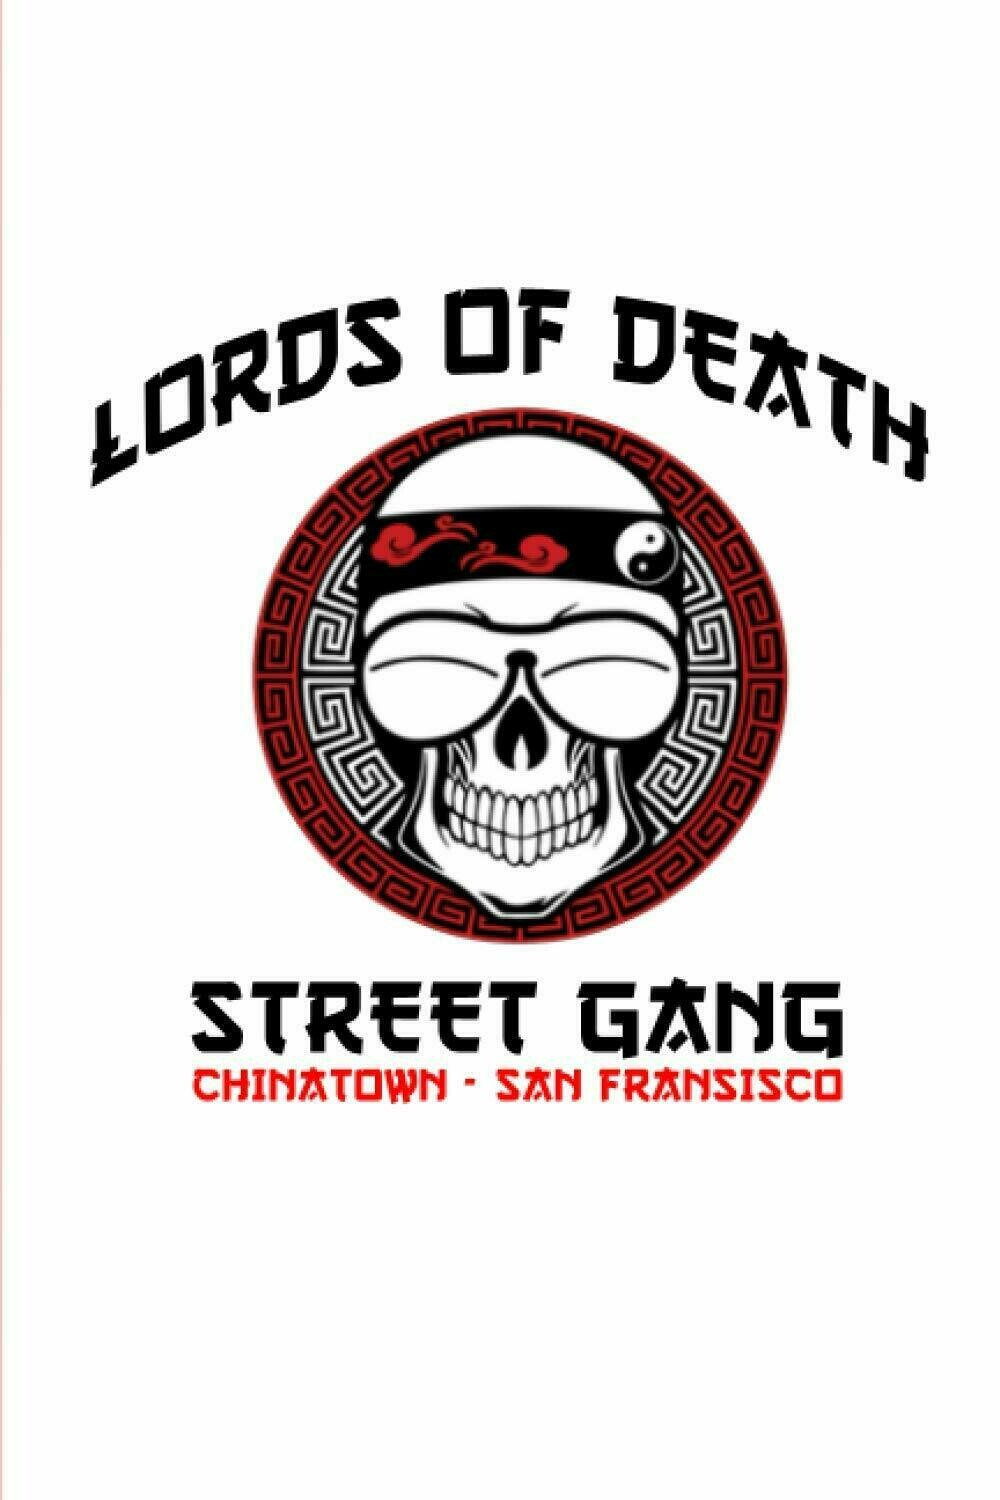 LORDS OF DEATH STREET GANG (Big Trouble in Little China / John Carpenter) Luxury Lined Notebook - Journal Diary Notepad Writing Paper Pad Movie Prop